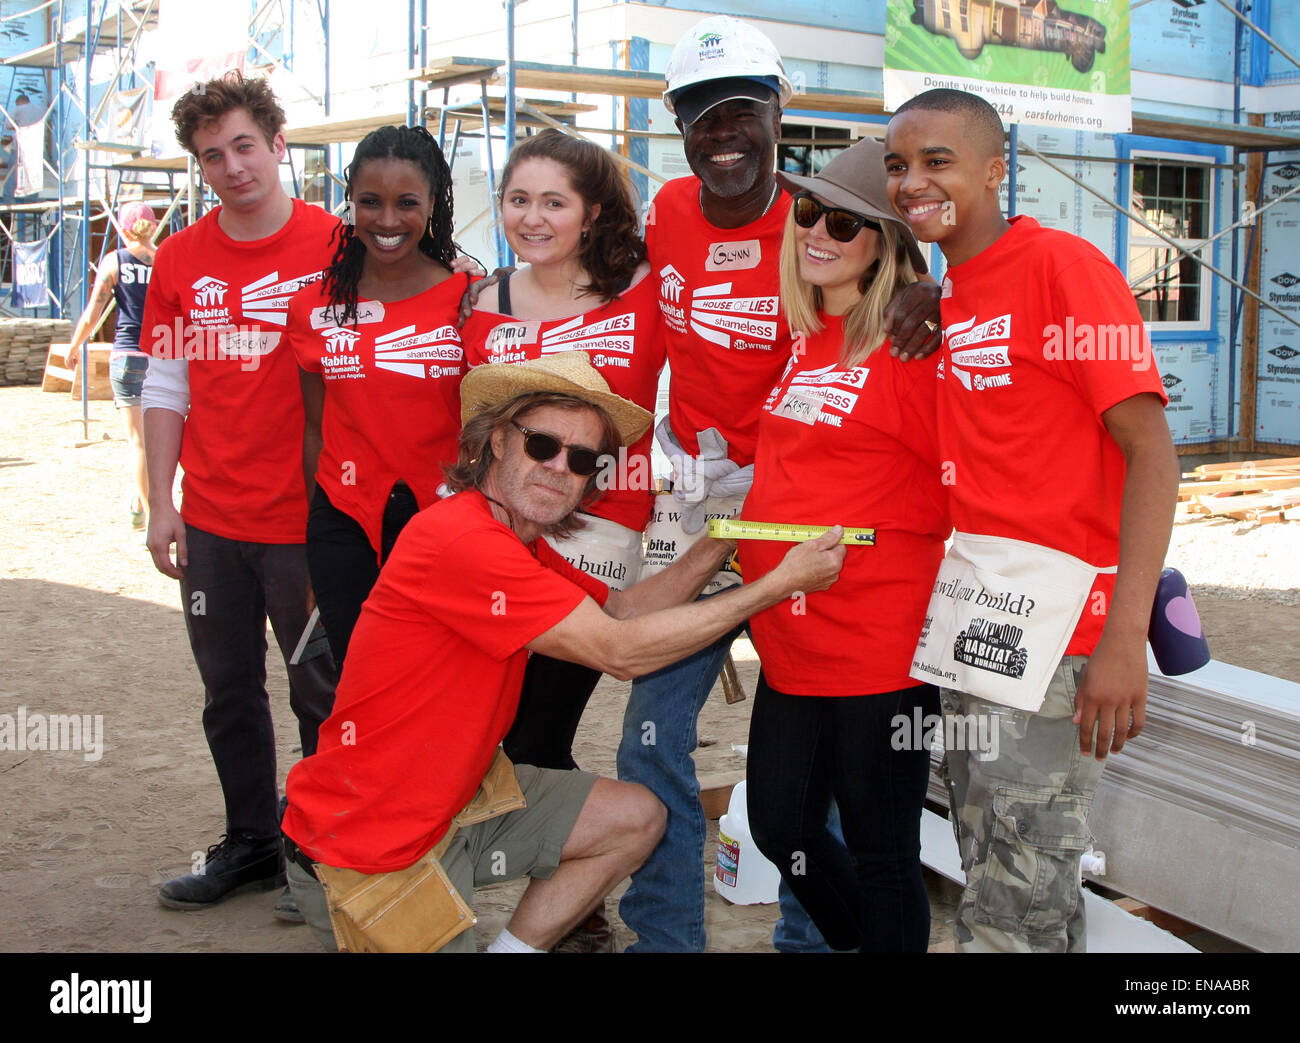 U0027Habitat For Humanityu0027 Greater Los Angeles House Build By The Cast Of  Showtimeu0027s Shameless And House Of Lies Featuring: Jeremy Allen  White,Shanola Hampton ...